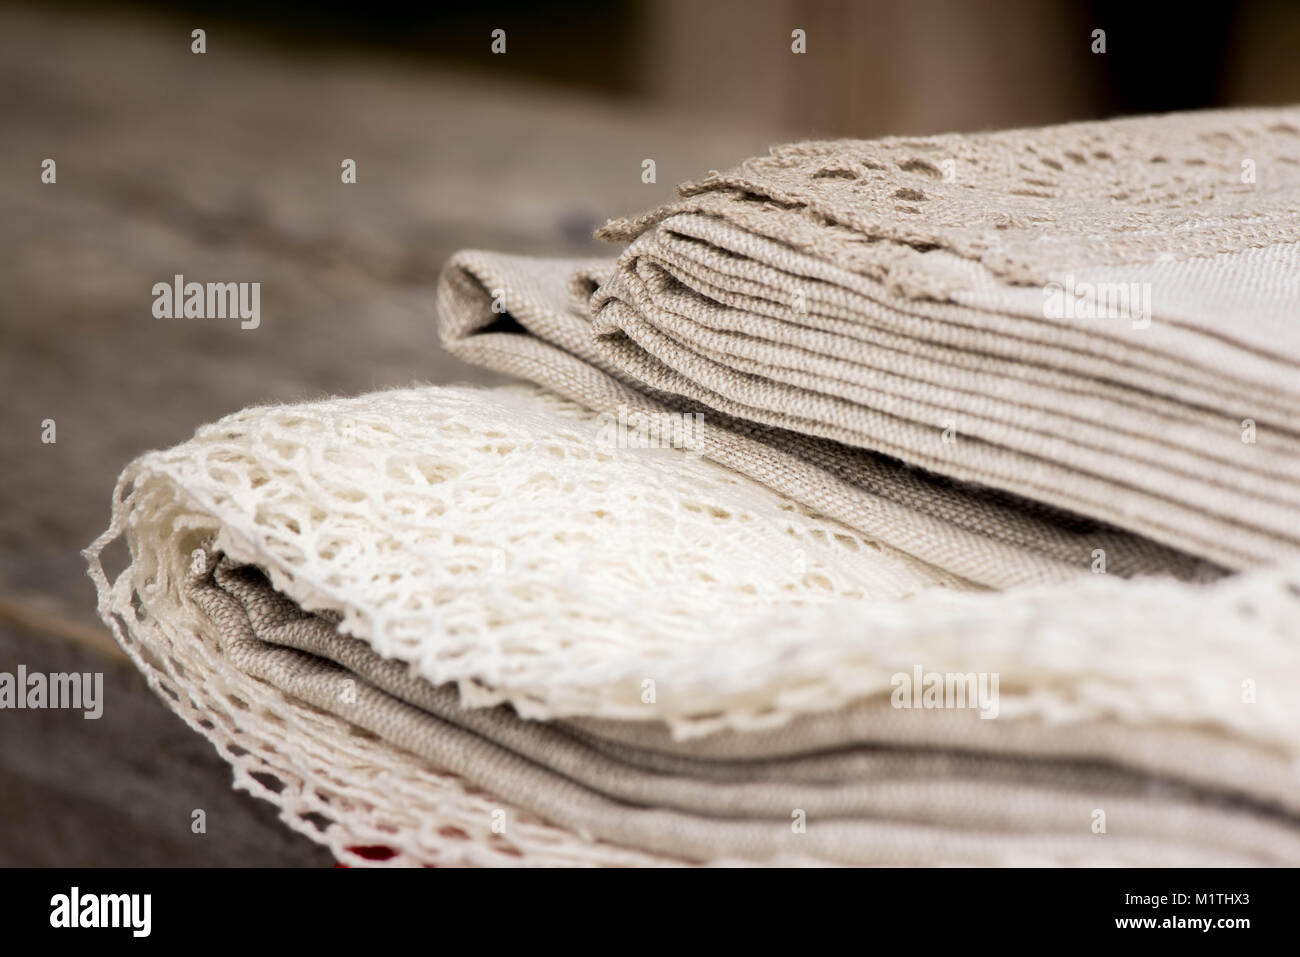 Shot of linen tablecloths, towels and napkins with grey and white lace trim, pine cone, flowers and wheat - Stock Image